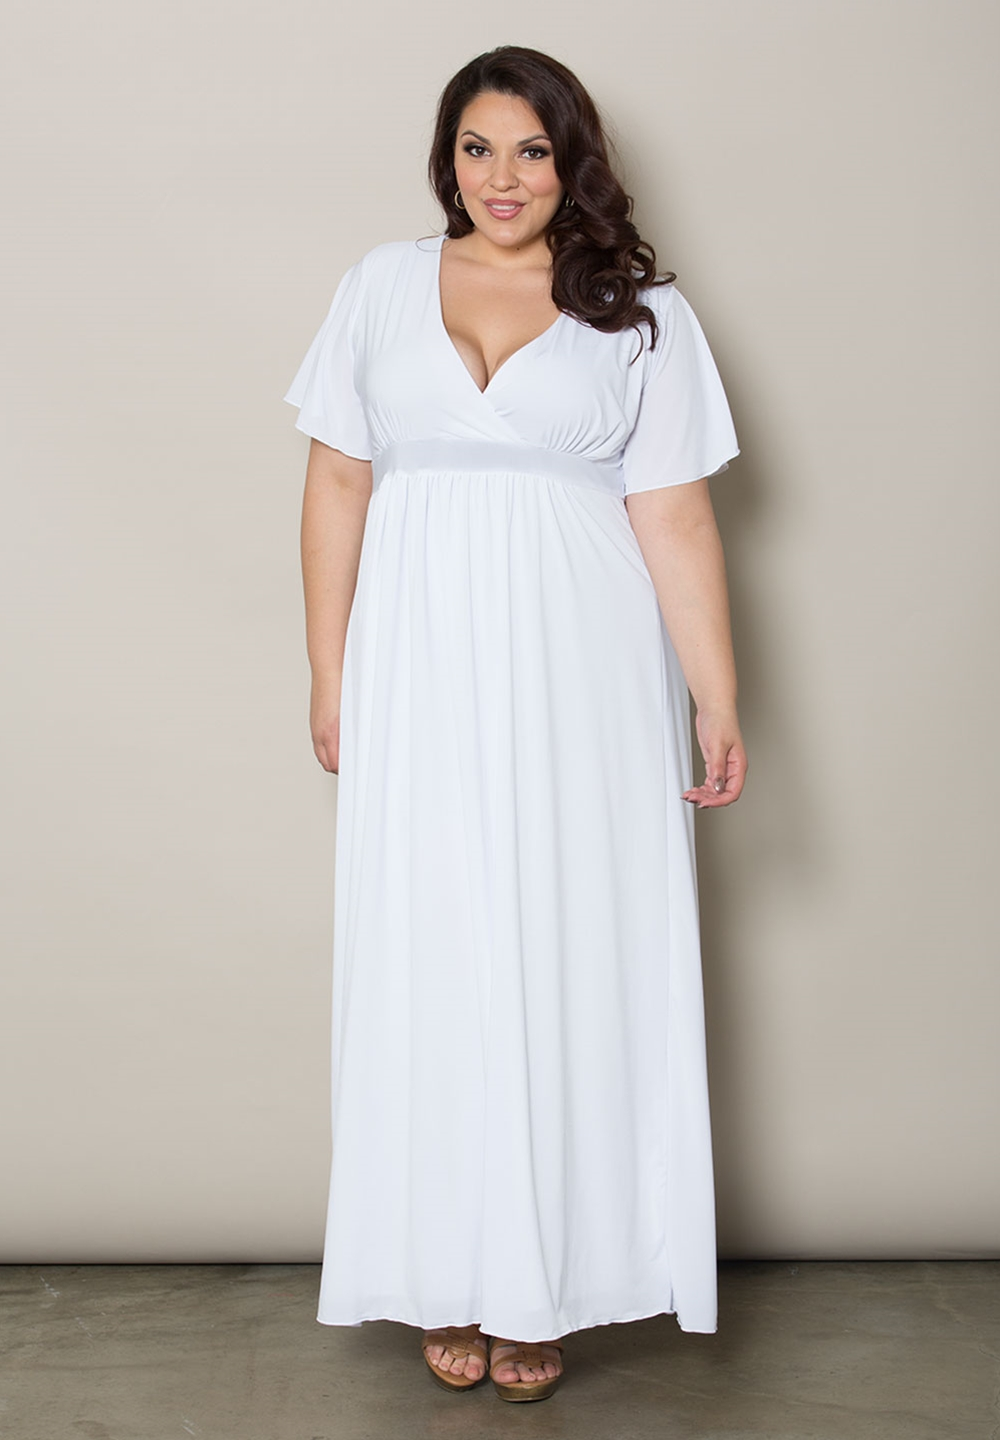 Shop Women's Plus Size Dresses from Plus Size Maxi Dresses to Plus Size Bodycon Dresses and More! GS LOVE is Your Trendy Affordable Plus Size Dresses Fashion Destination. FREE .